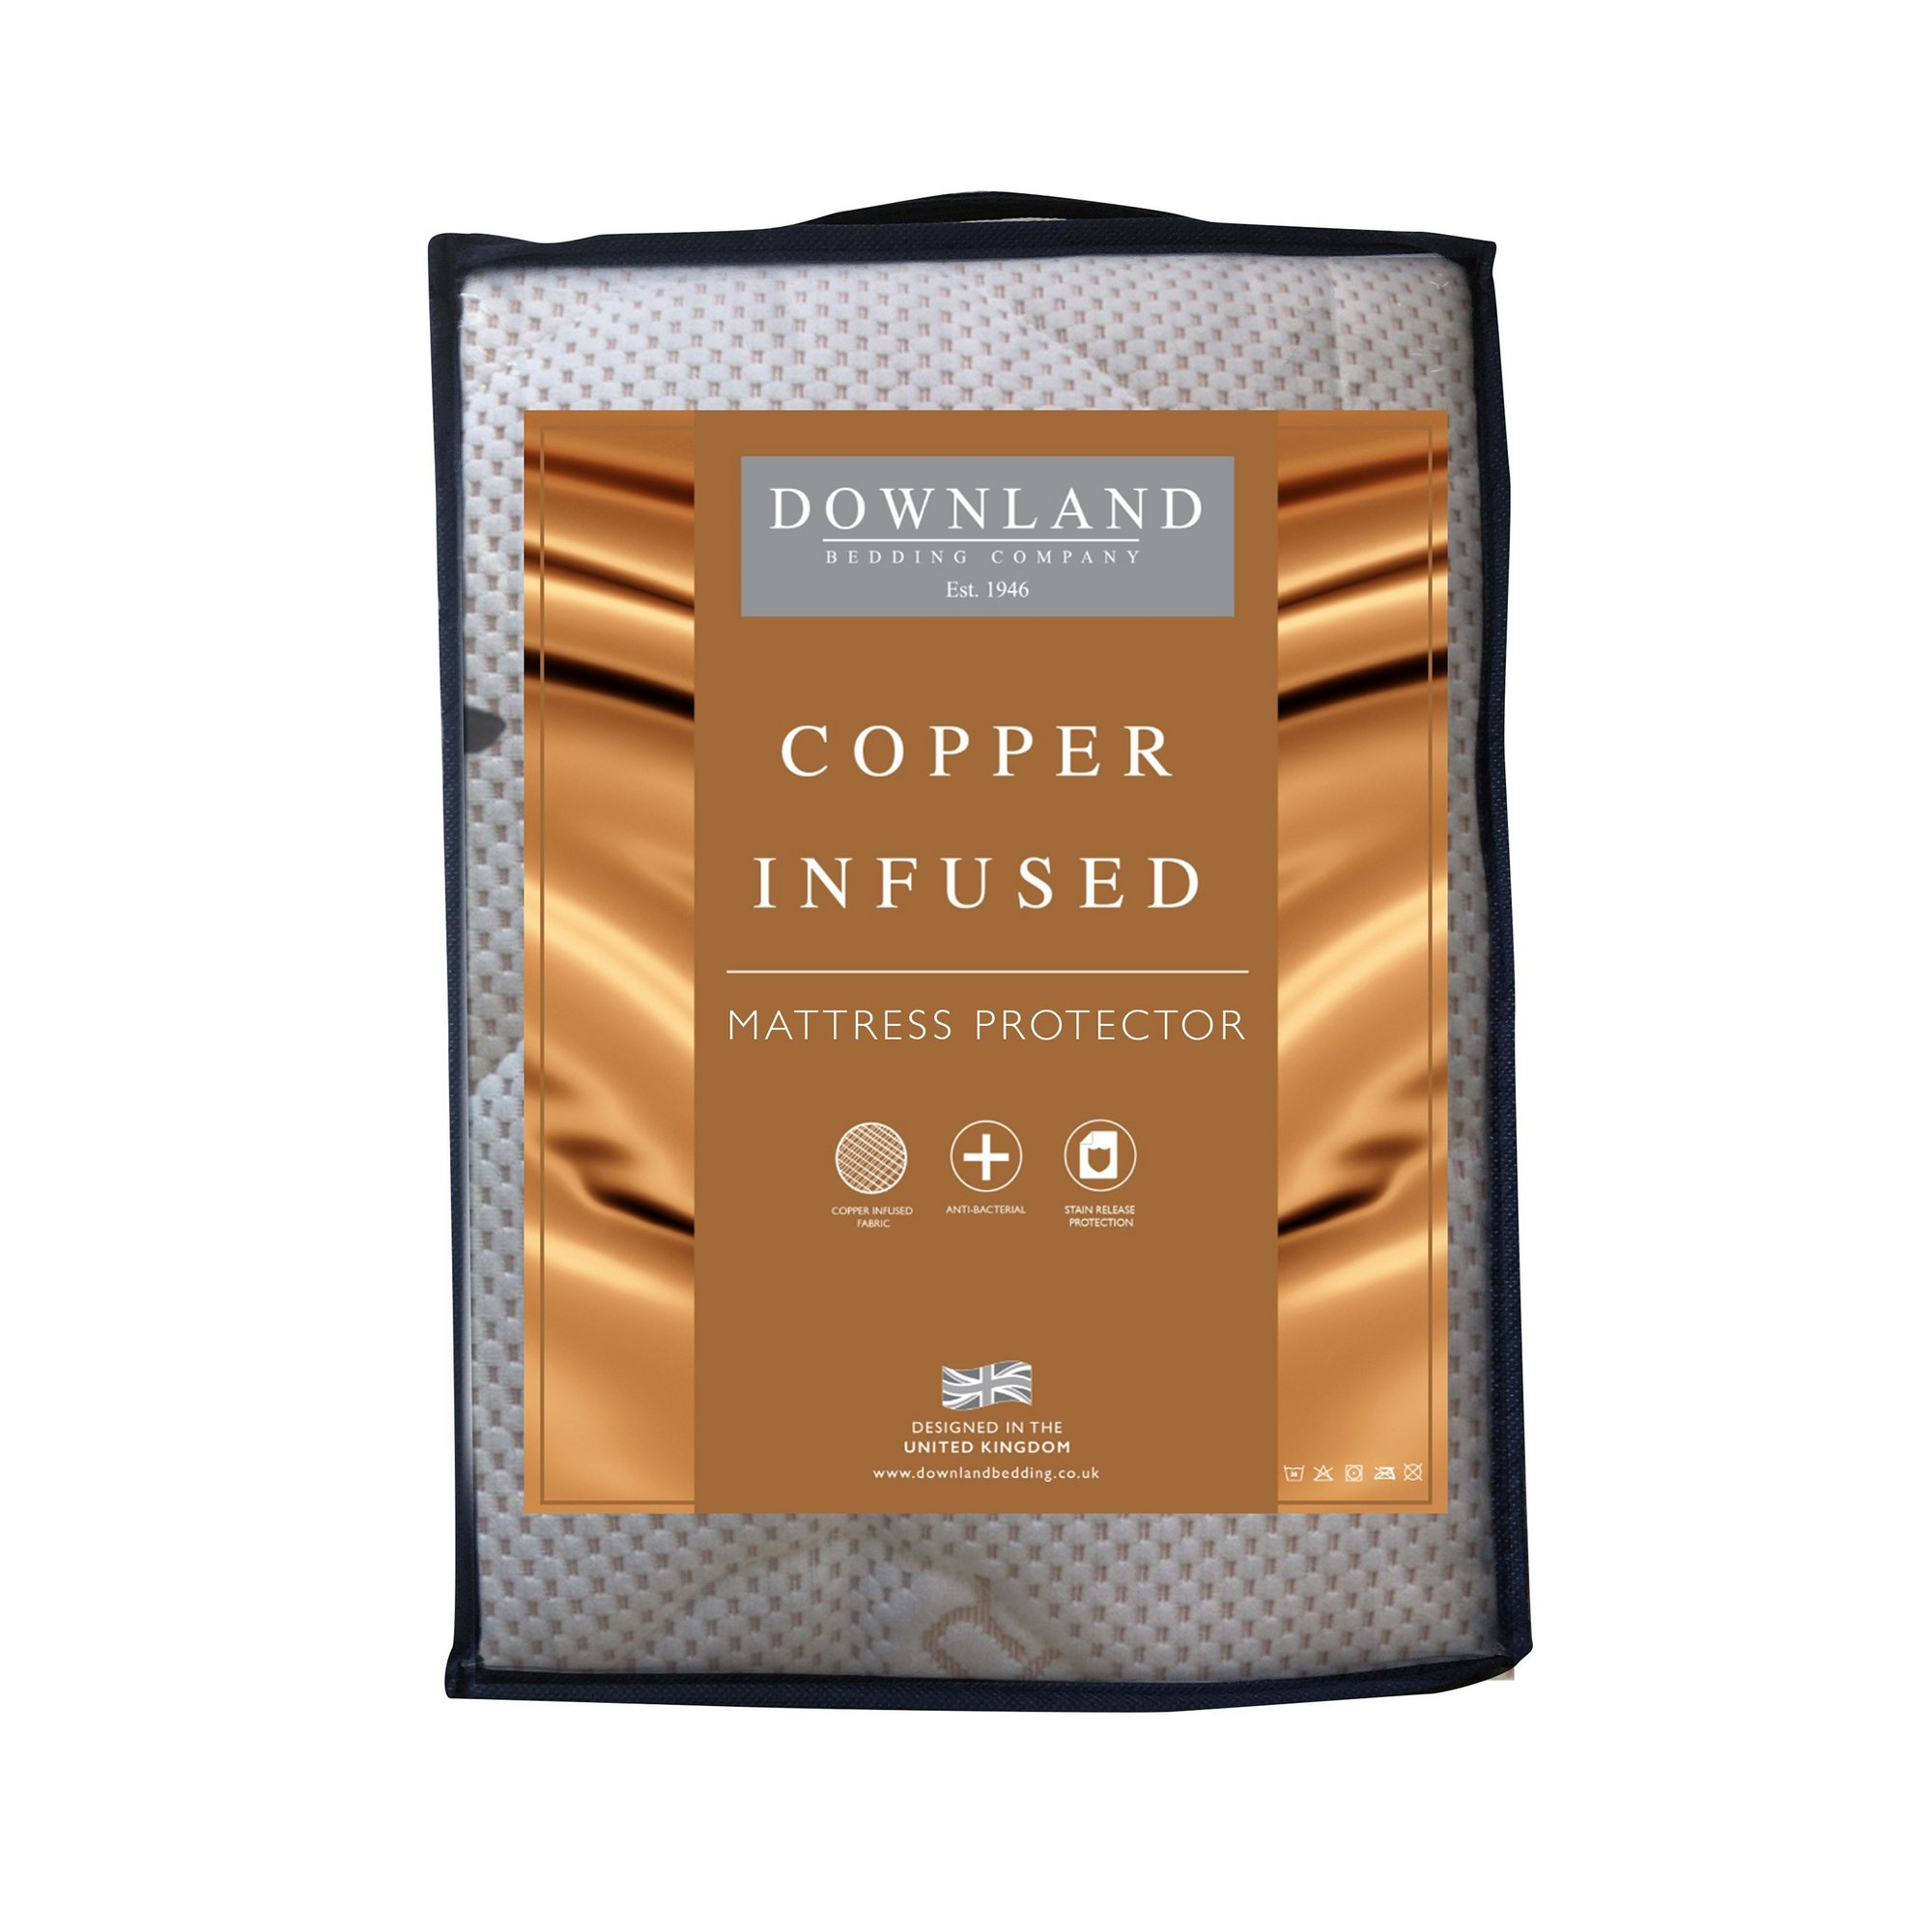 Image of Downland Copper Infused Mattress Protector